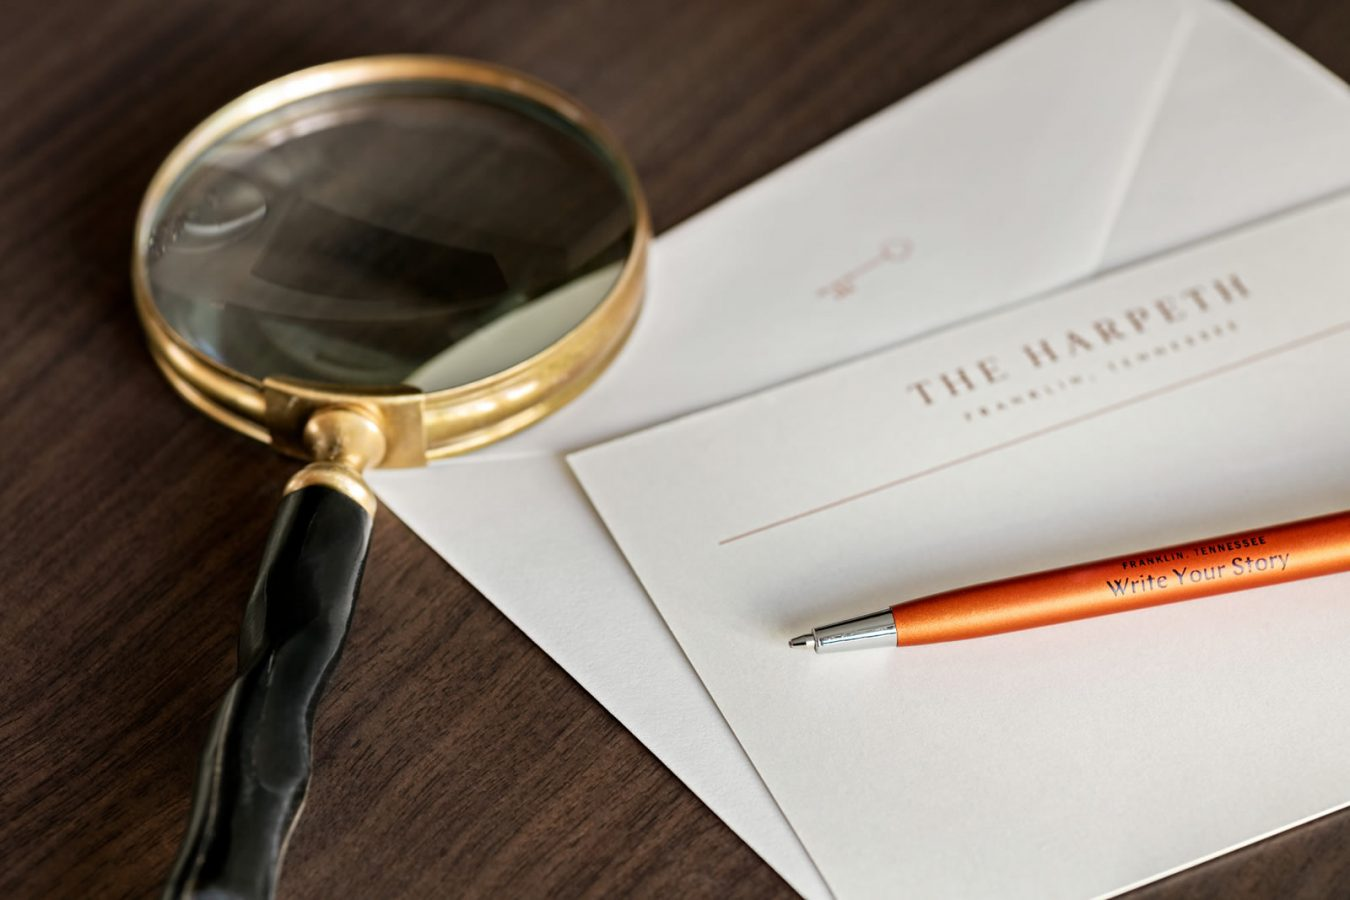 Magnifying glass, pen, and stationery, Downtown Franklin Hotel, The Harpeth Hotel